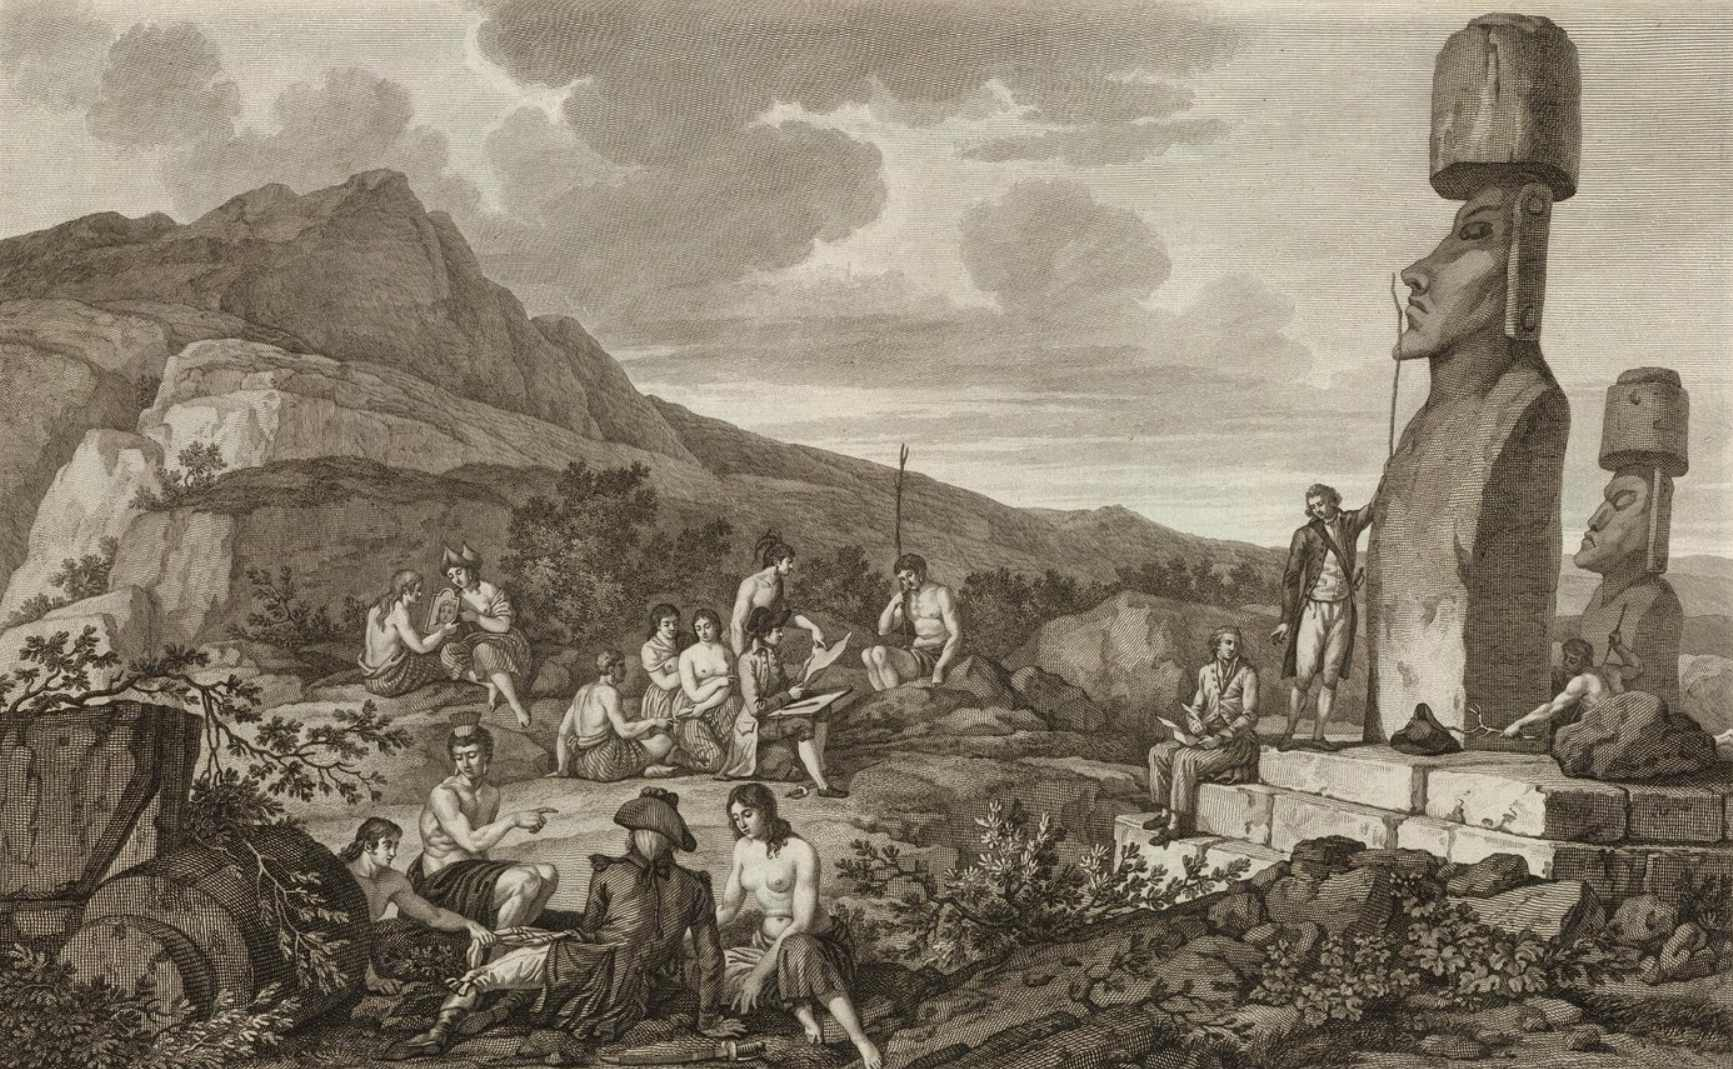 In 1722 when, on Easter Sunday, Dutchman Jacob Roggeveen discovered the island. He was the first European to discover this enigmatic island. Roggeveen and his crew estimated that there were 2,000 to 3,000 inhabitants on the island. Apparently, explorers reported fewer and fewer inhabitants as the years went on, until eventually, the population dwindled to less than 100 within a few decades. Now, it's estimated the island's population was around 12,000 at its peak.